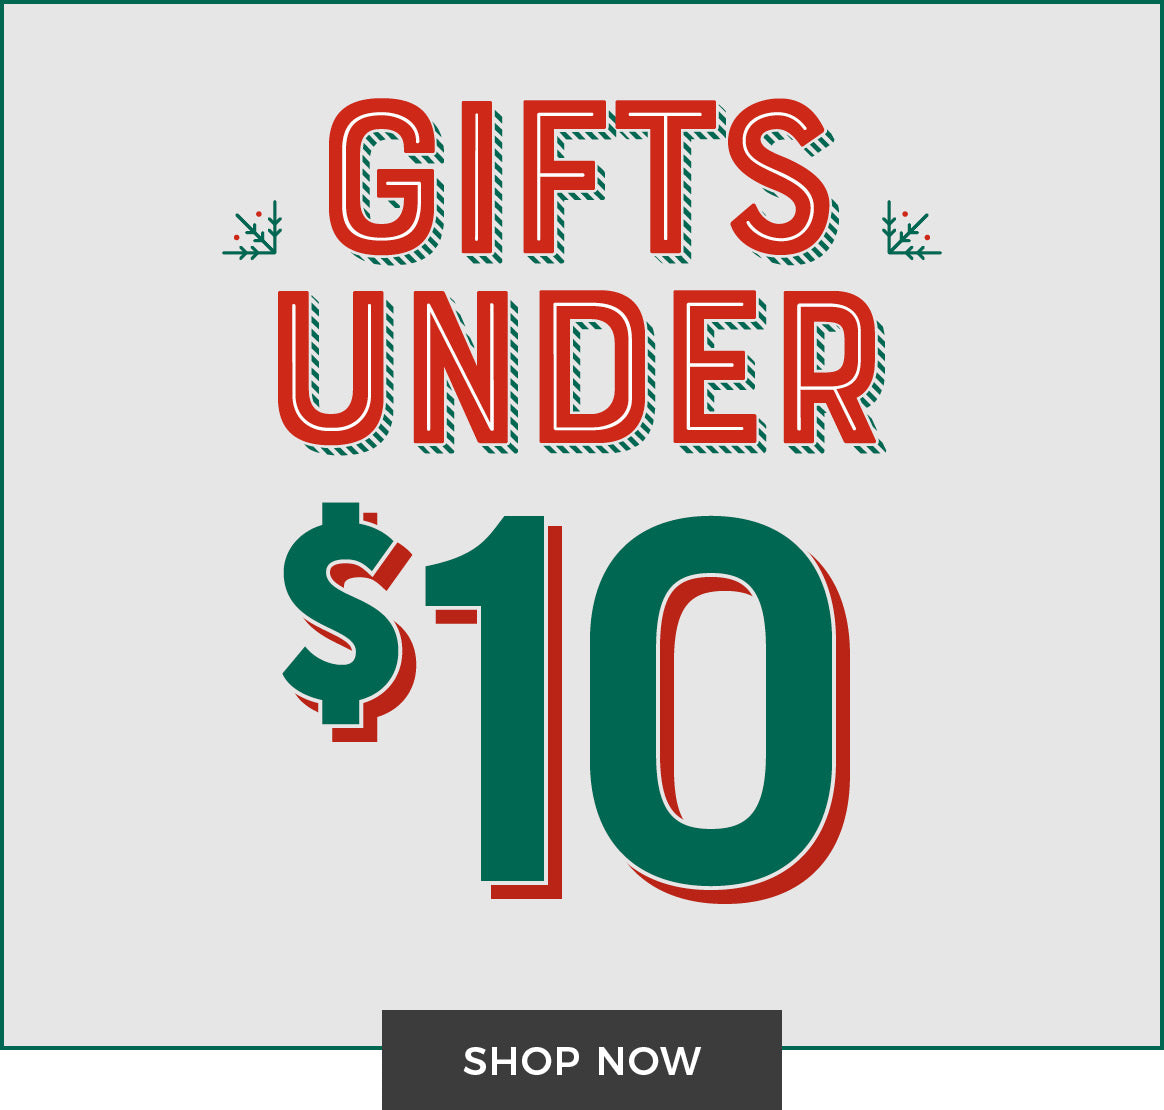 Urban Planet | Holiday Shop - Shop Gifts Under $10